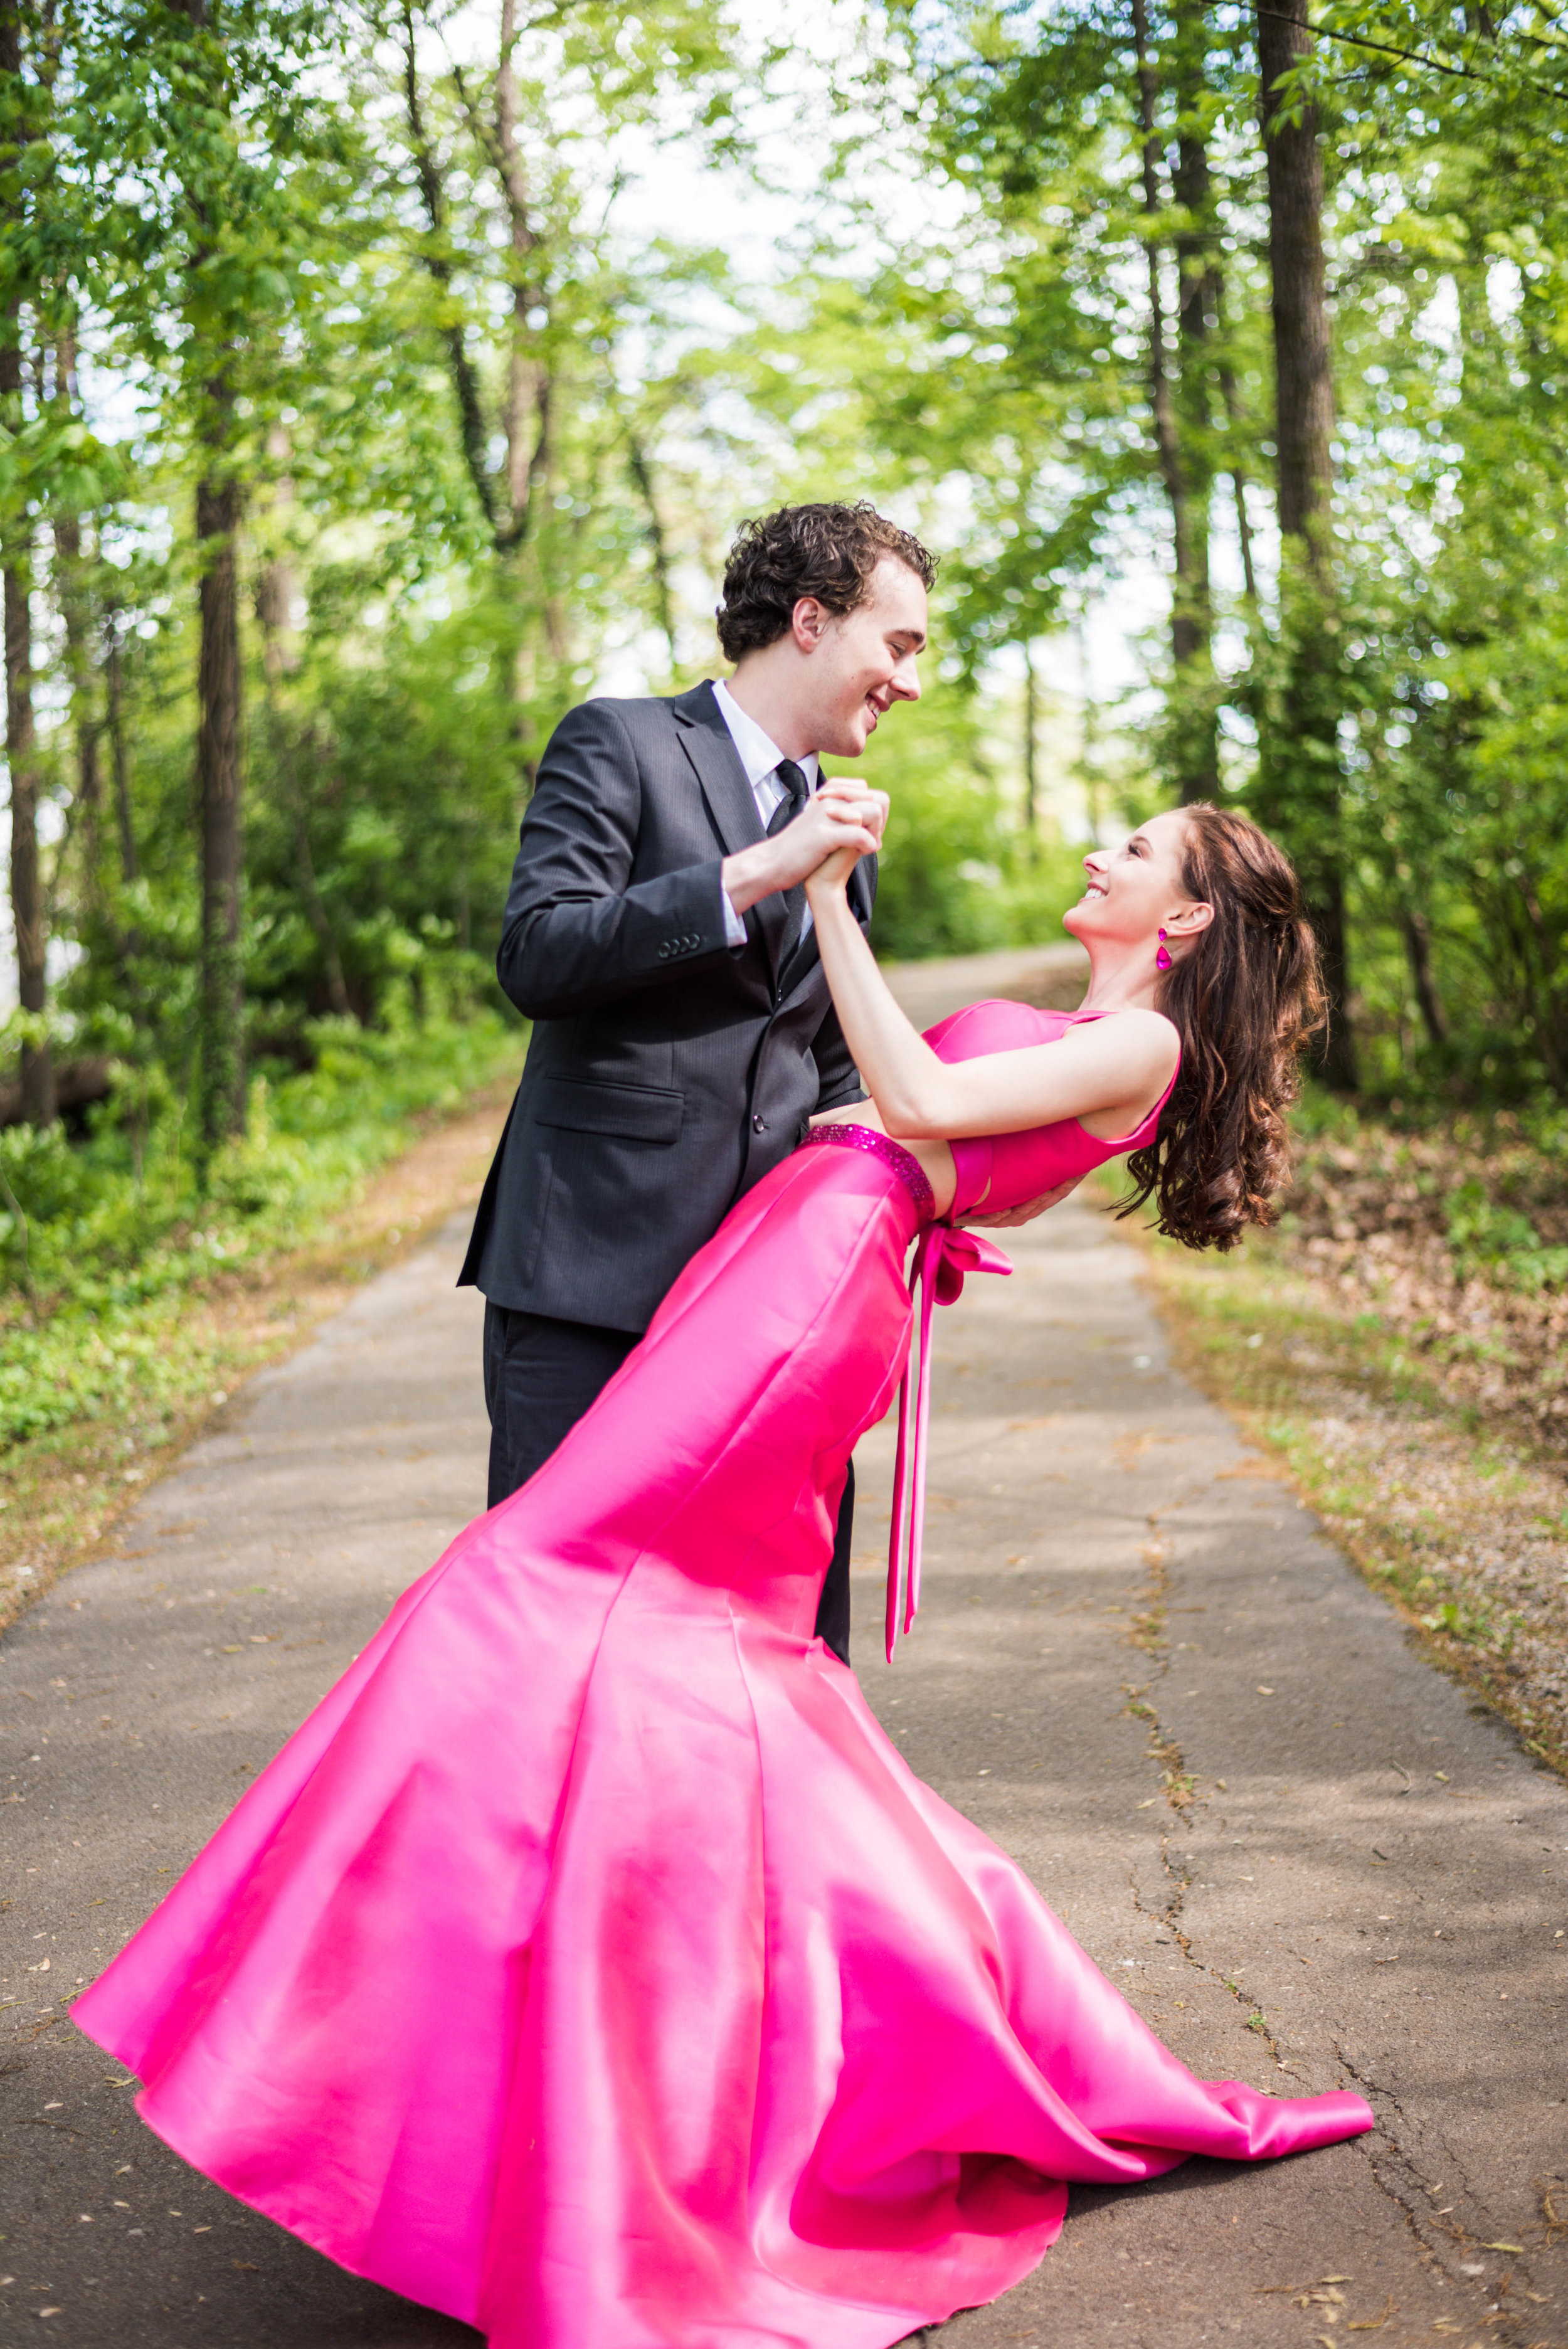 Anna and Dustin's Prom session!